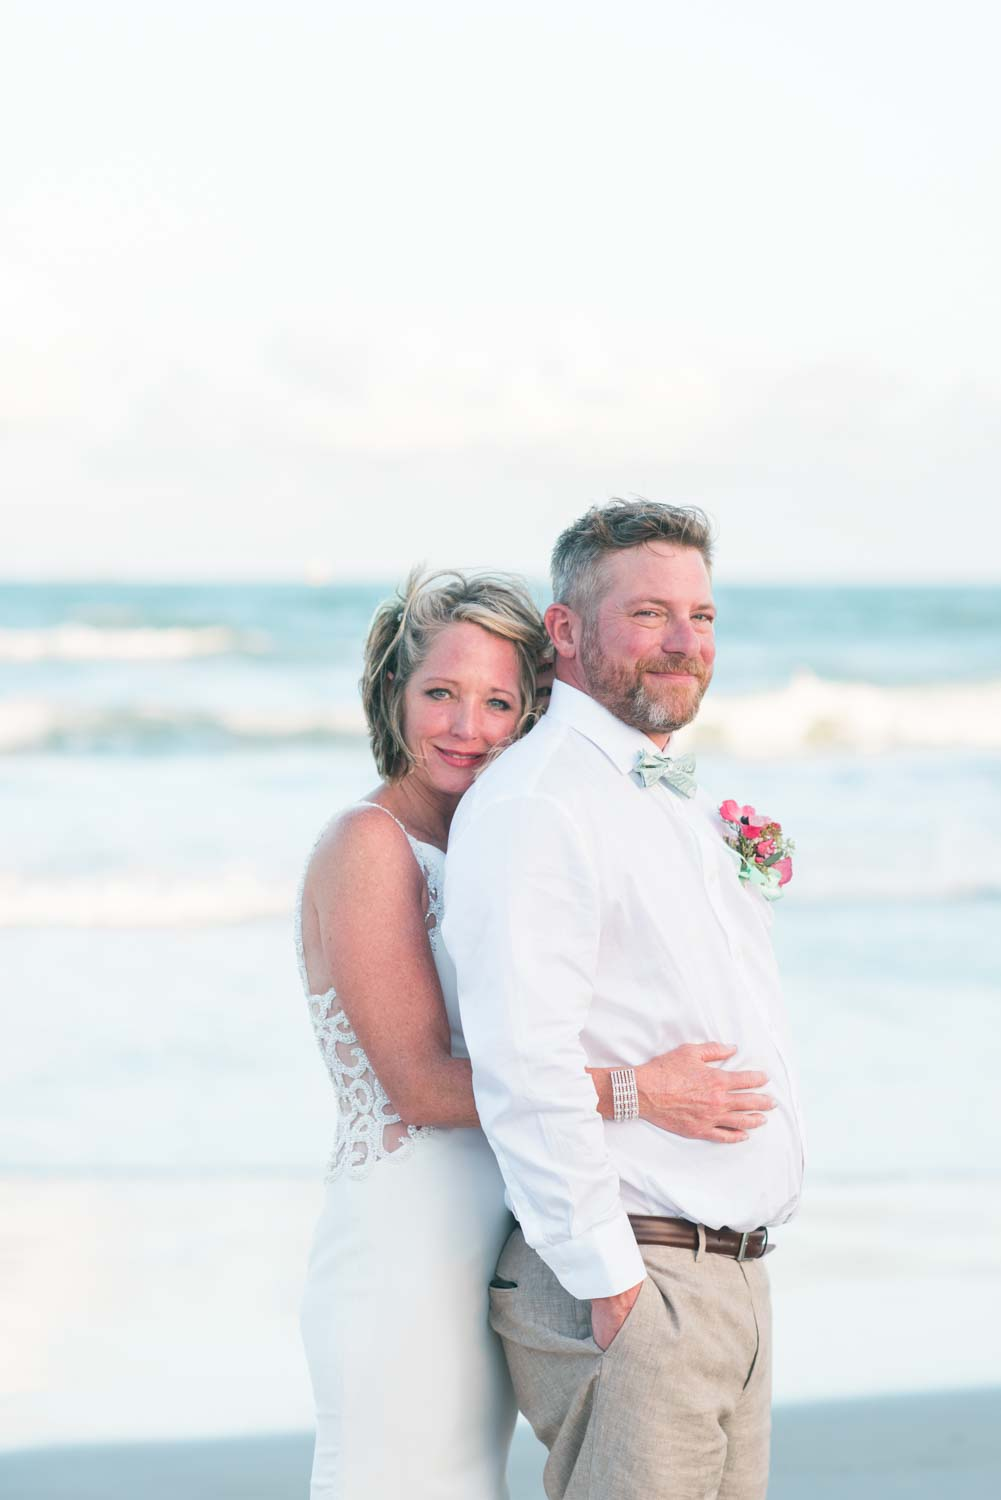 Cape Canaveral Beach Wedding Photographer - Rania Marie Photography-17.jpg